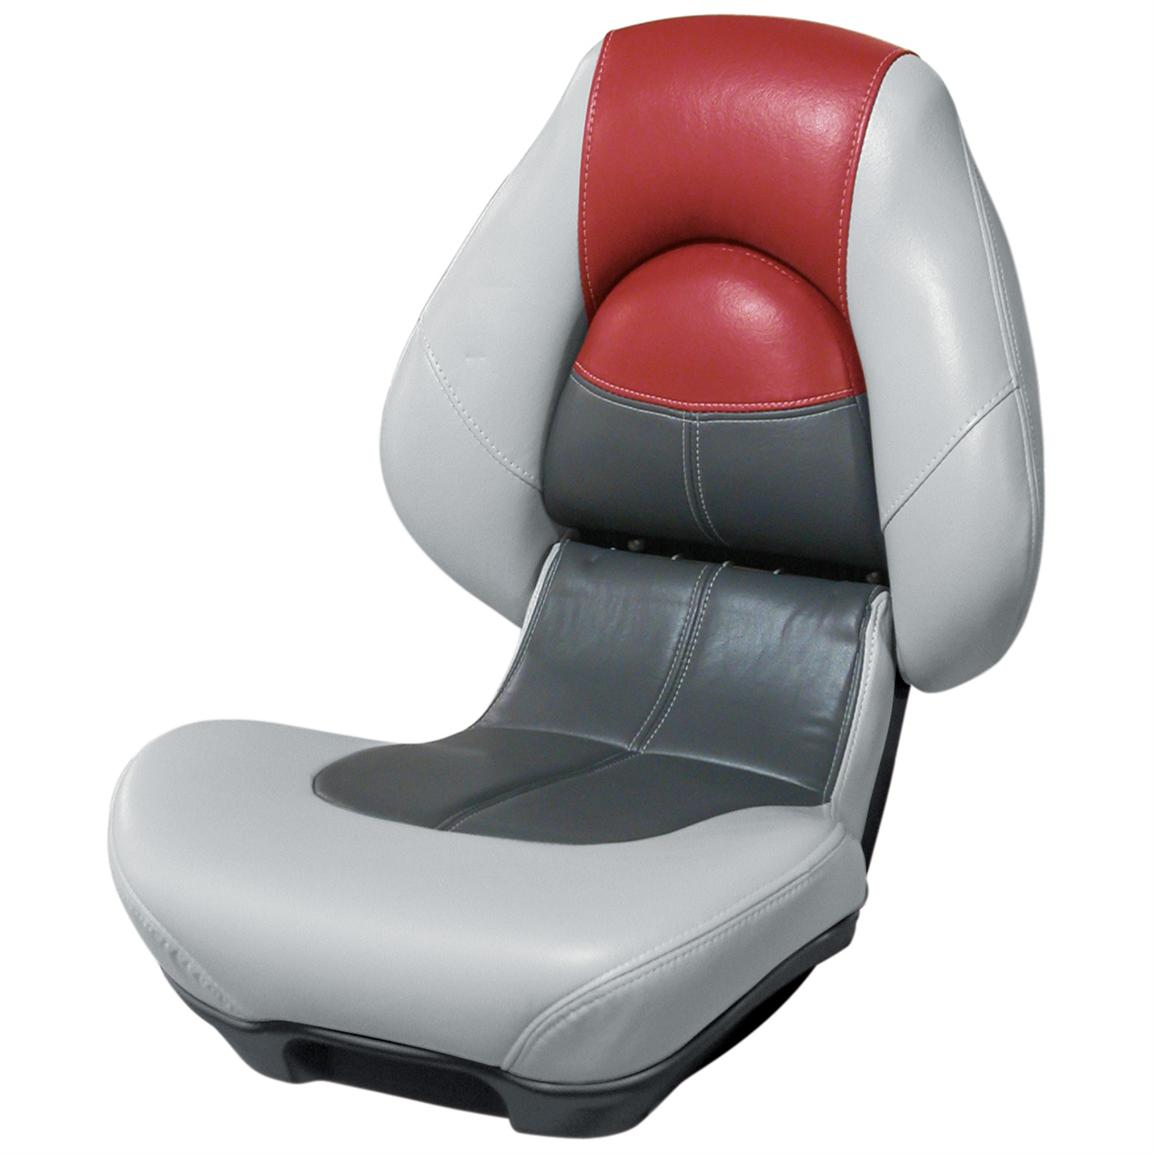 Wise® Blast-Off™ Series Centric 2 Folding Boat Seat, Grey / Charcoal / Red